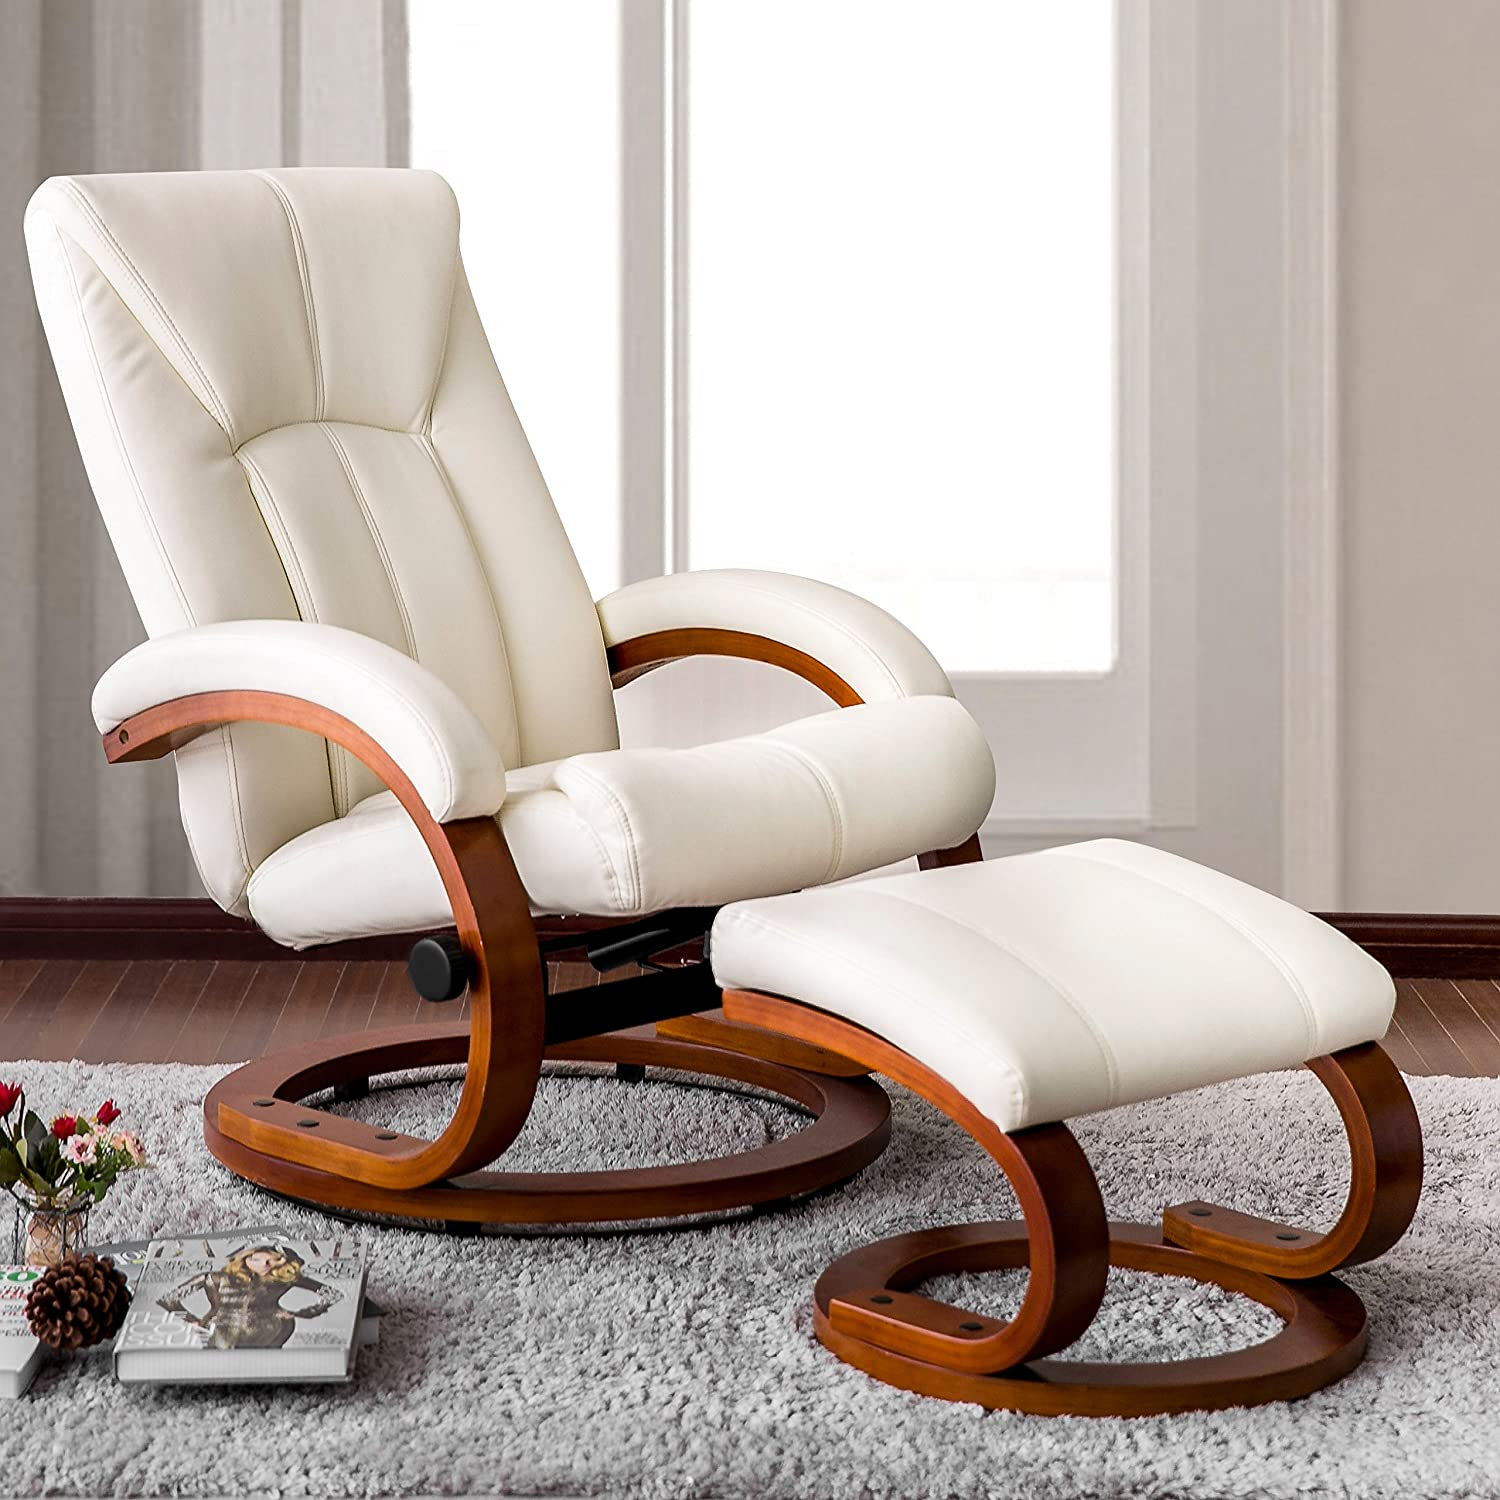 Haper & Bright Designs Swivel Recliner and Ottoman Beige Leather Lounge Seat with Foot Stool and Wooden Base (Beige)